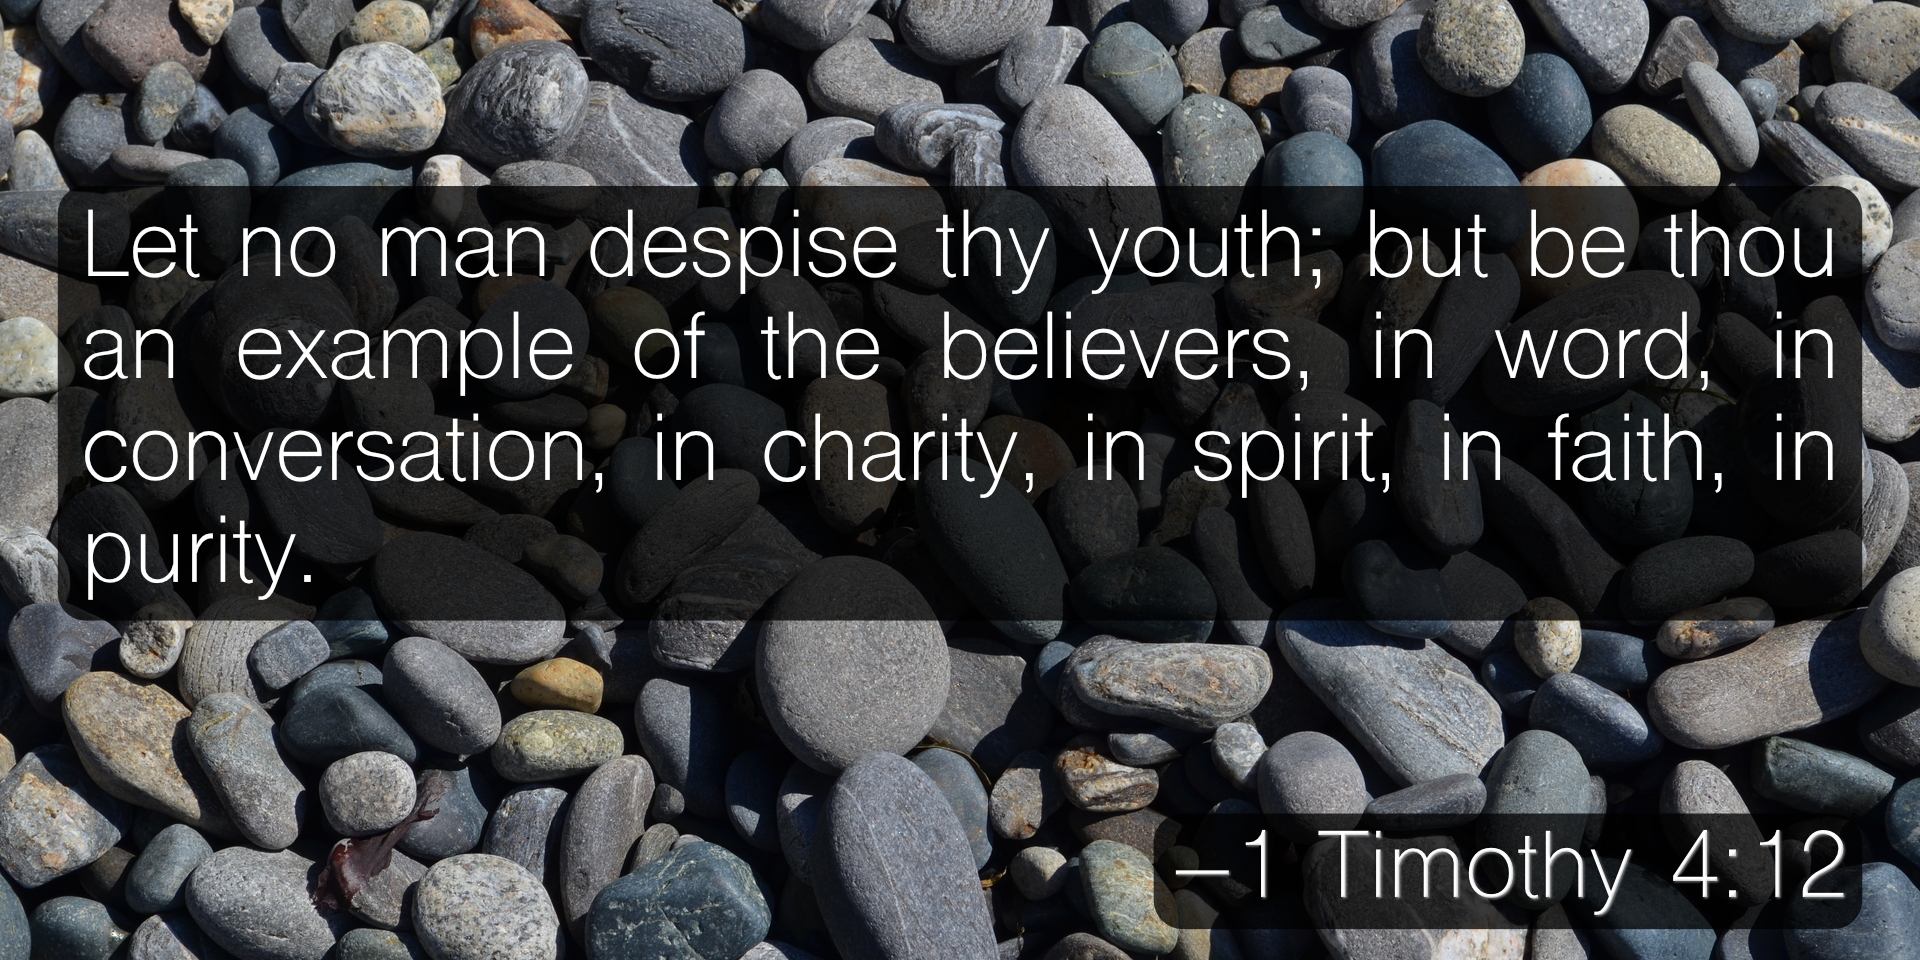 Let no man despise thy youth; but be thou an example of the believers, in word, in conversation, in charity, in spirit, in faith, in purity. –1 Timothy 4:12